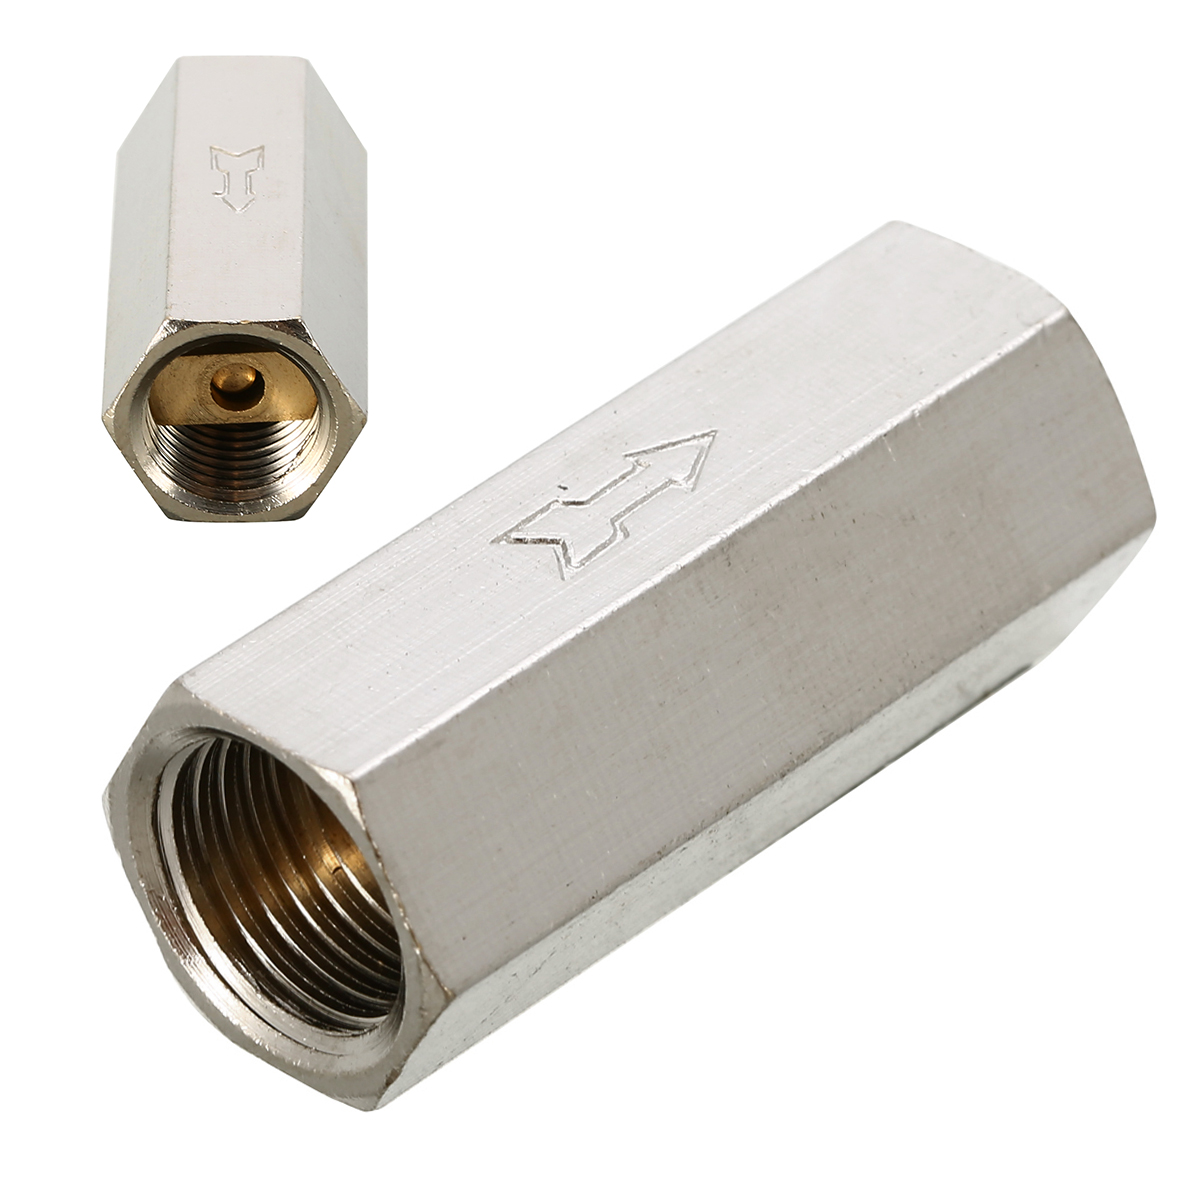 1pc Brass Air Check Valve 1/4